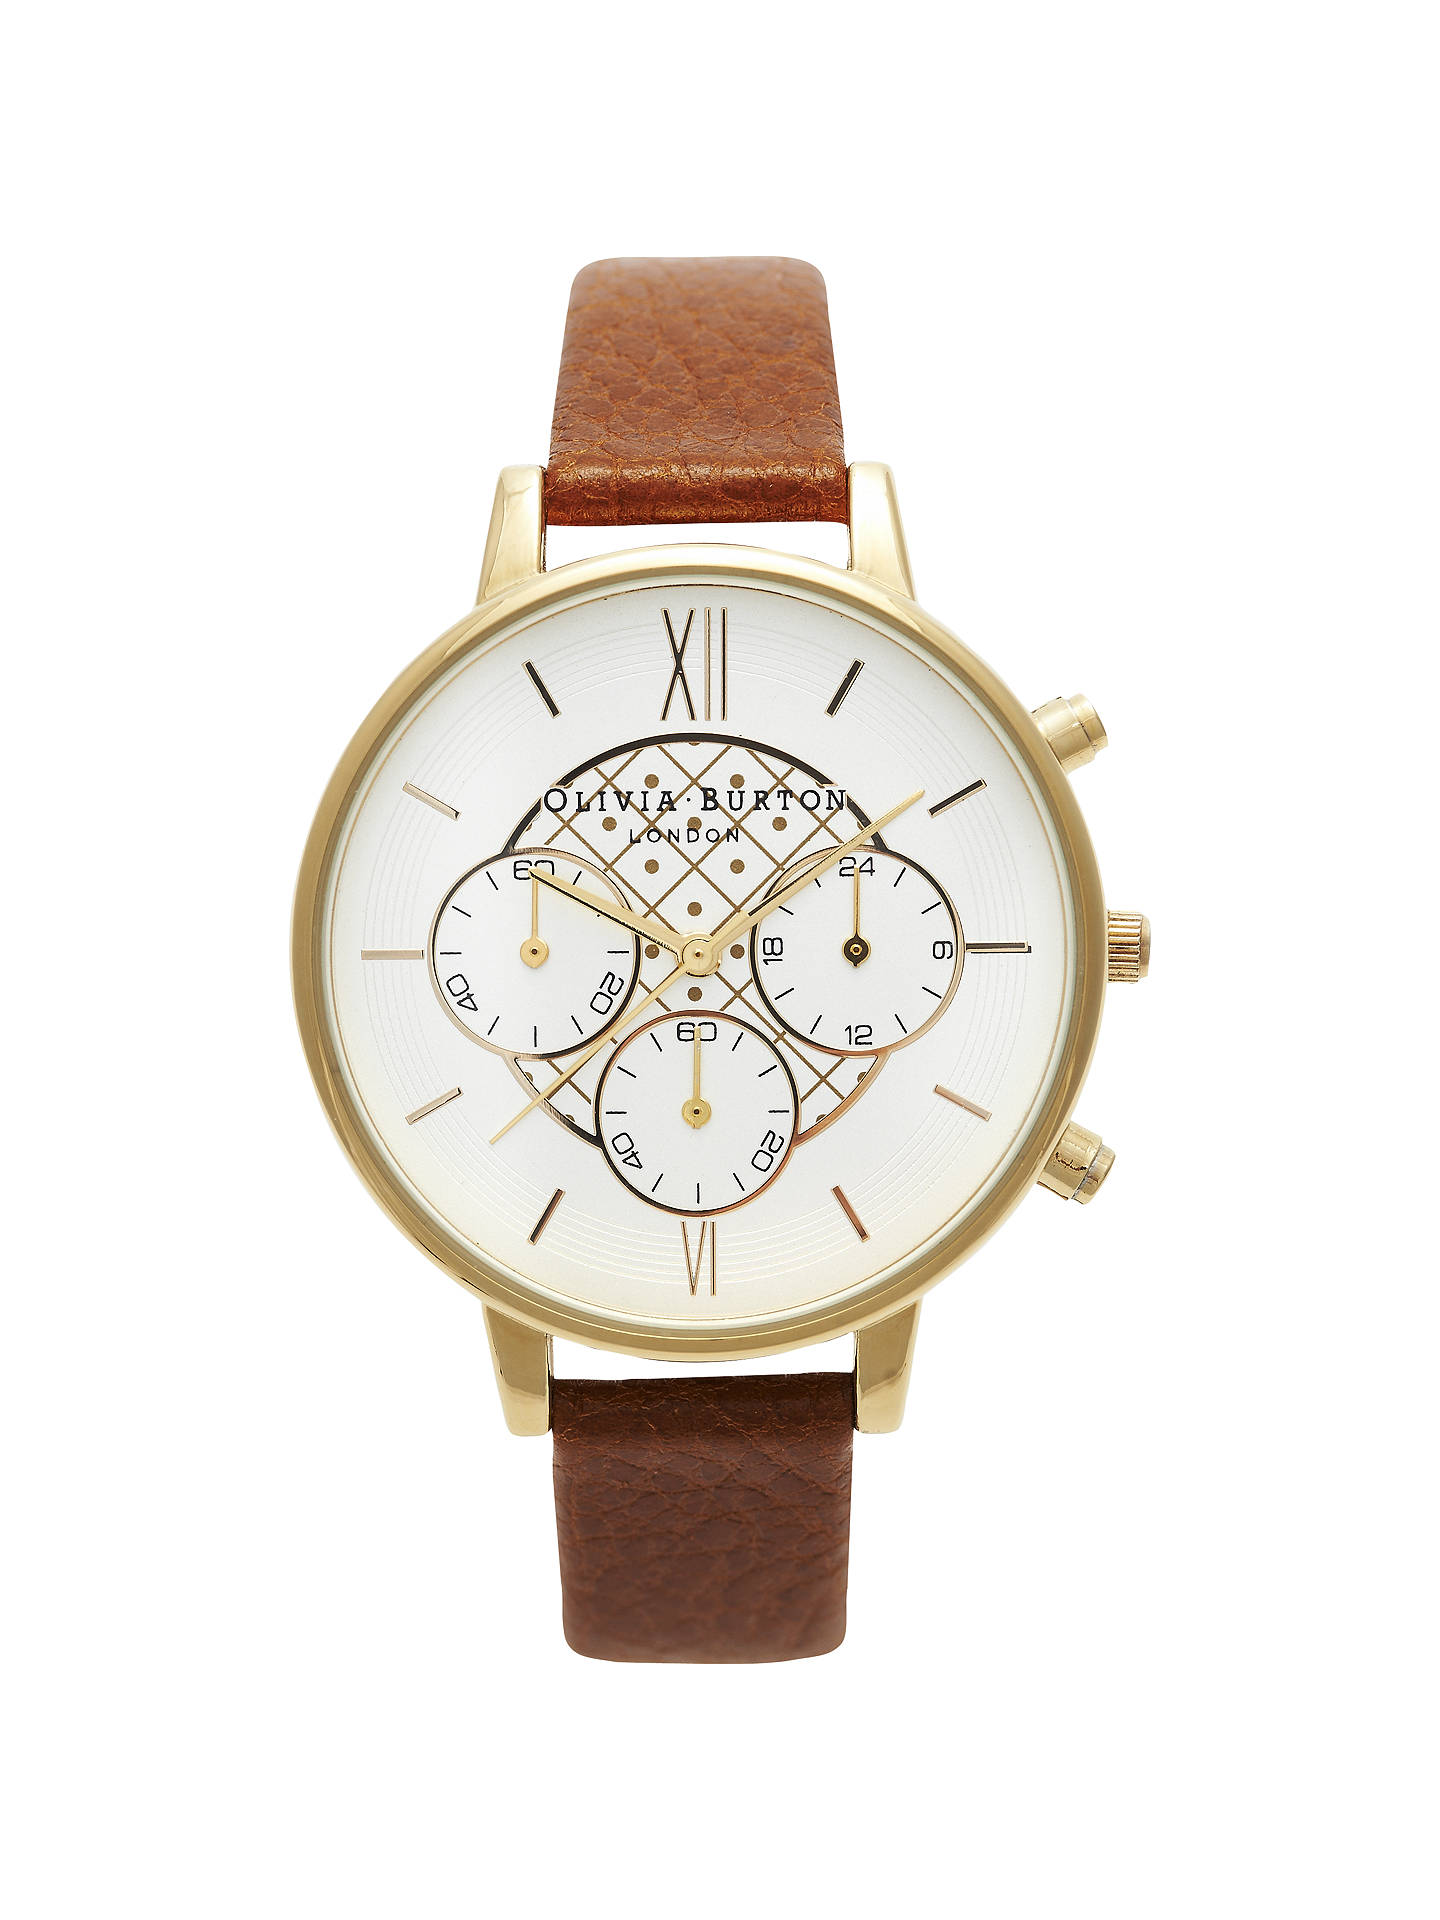 BuyOlivia Burton OB13CG02 Women's Check Dial Leather Strap Chronograph Watch, Tan Online at johnlewis.com